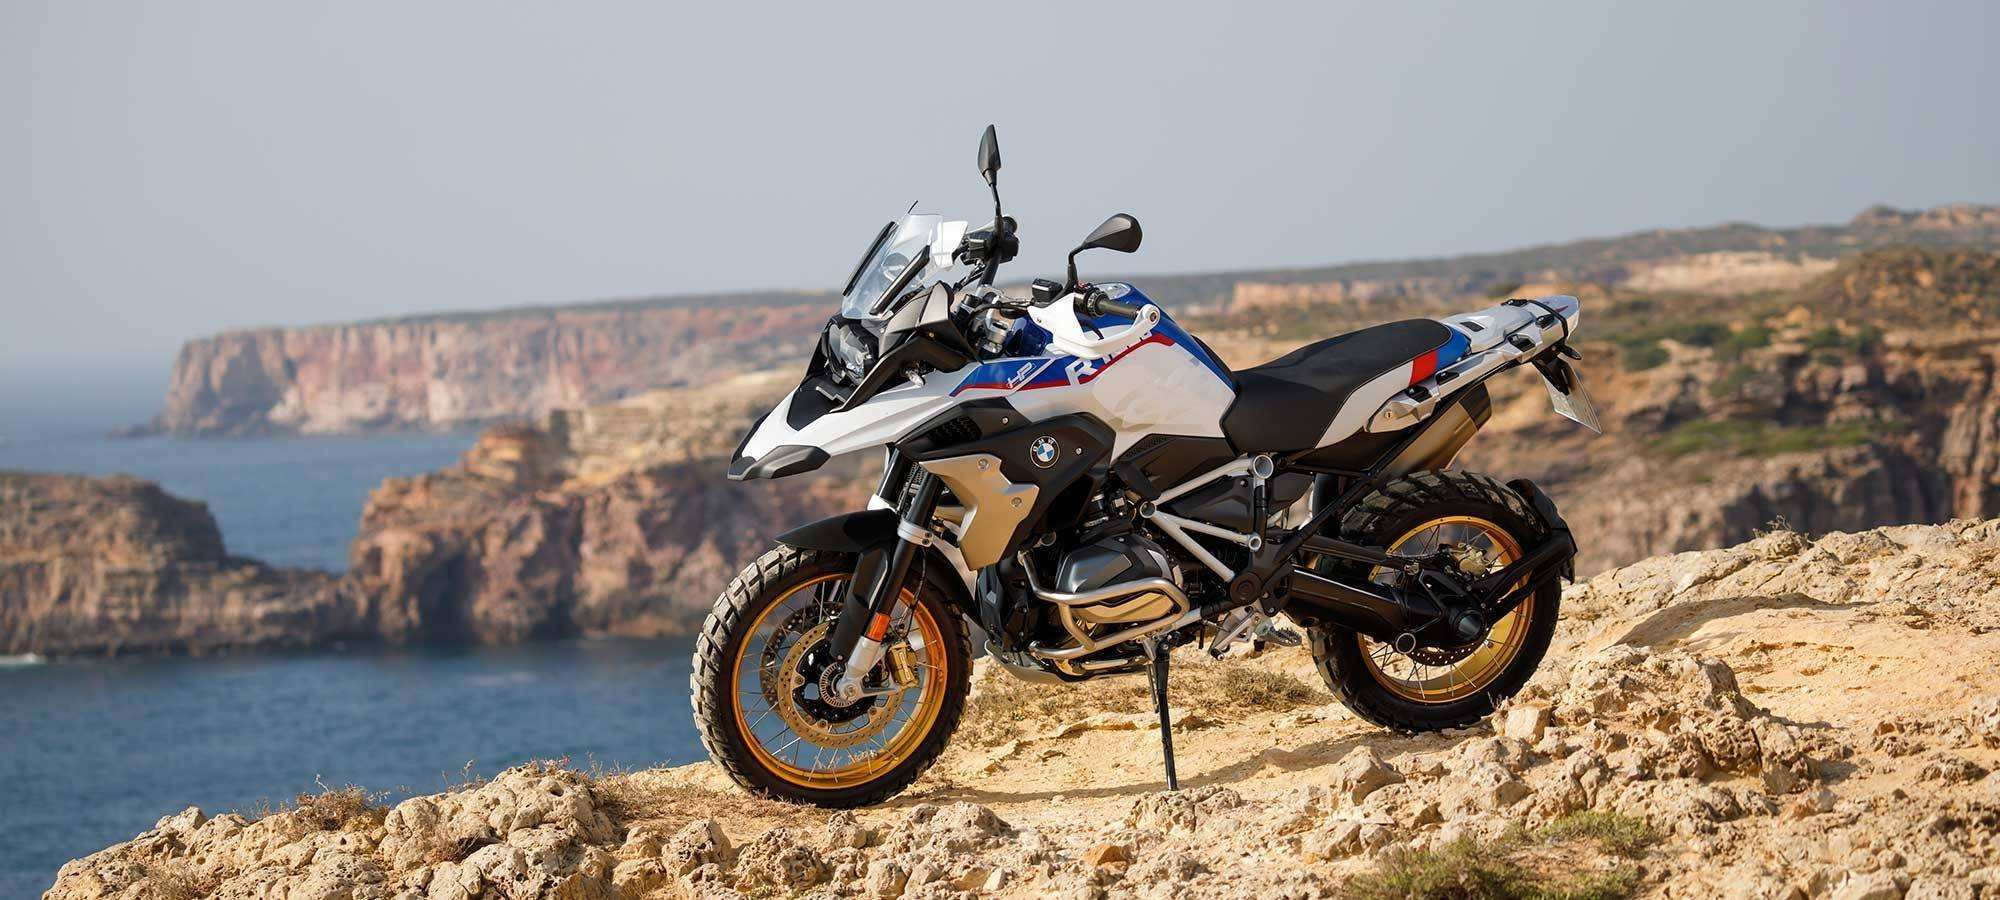 28 Great 2019 Bmw R1250Gs Performance and New Engine for 2019 Bmw R1250Gs